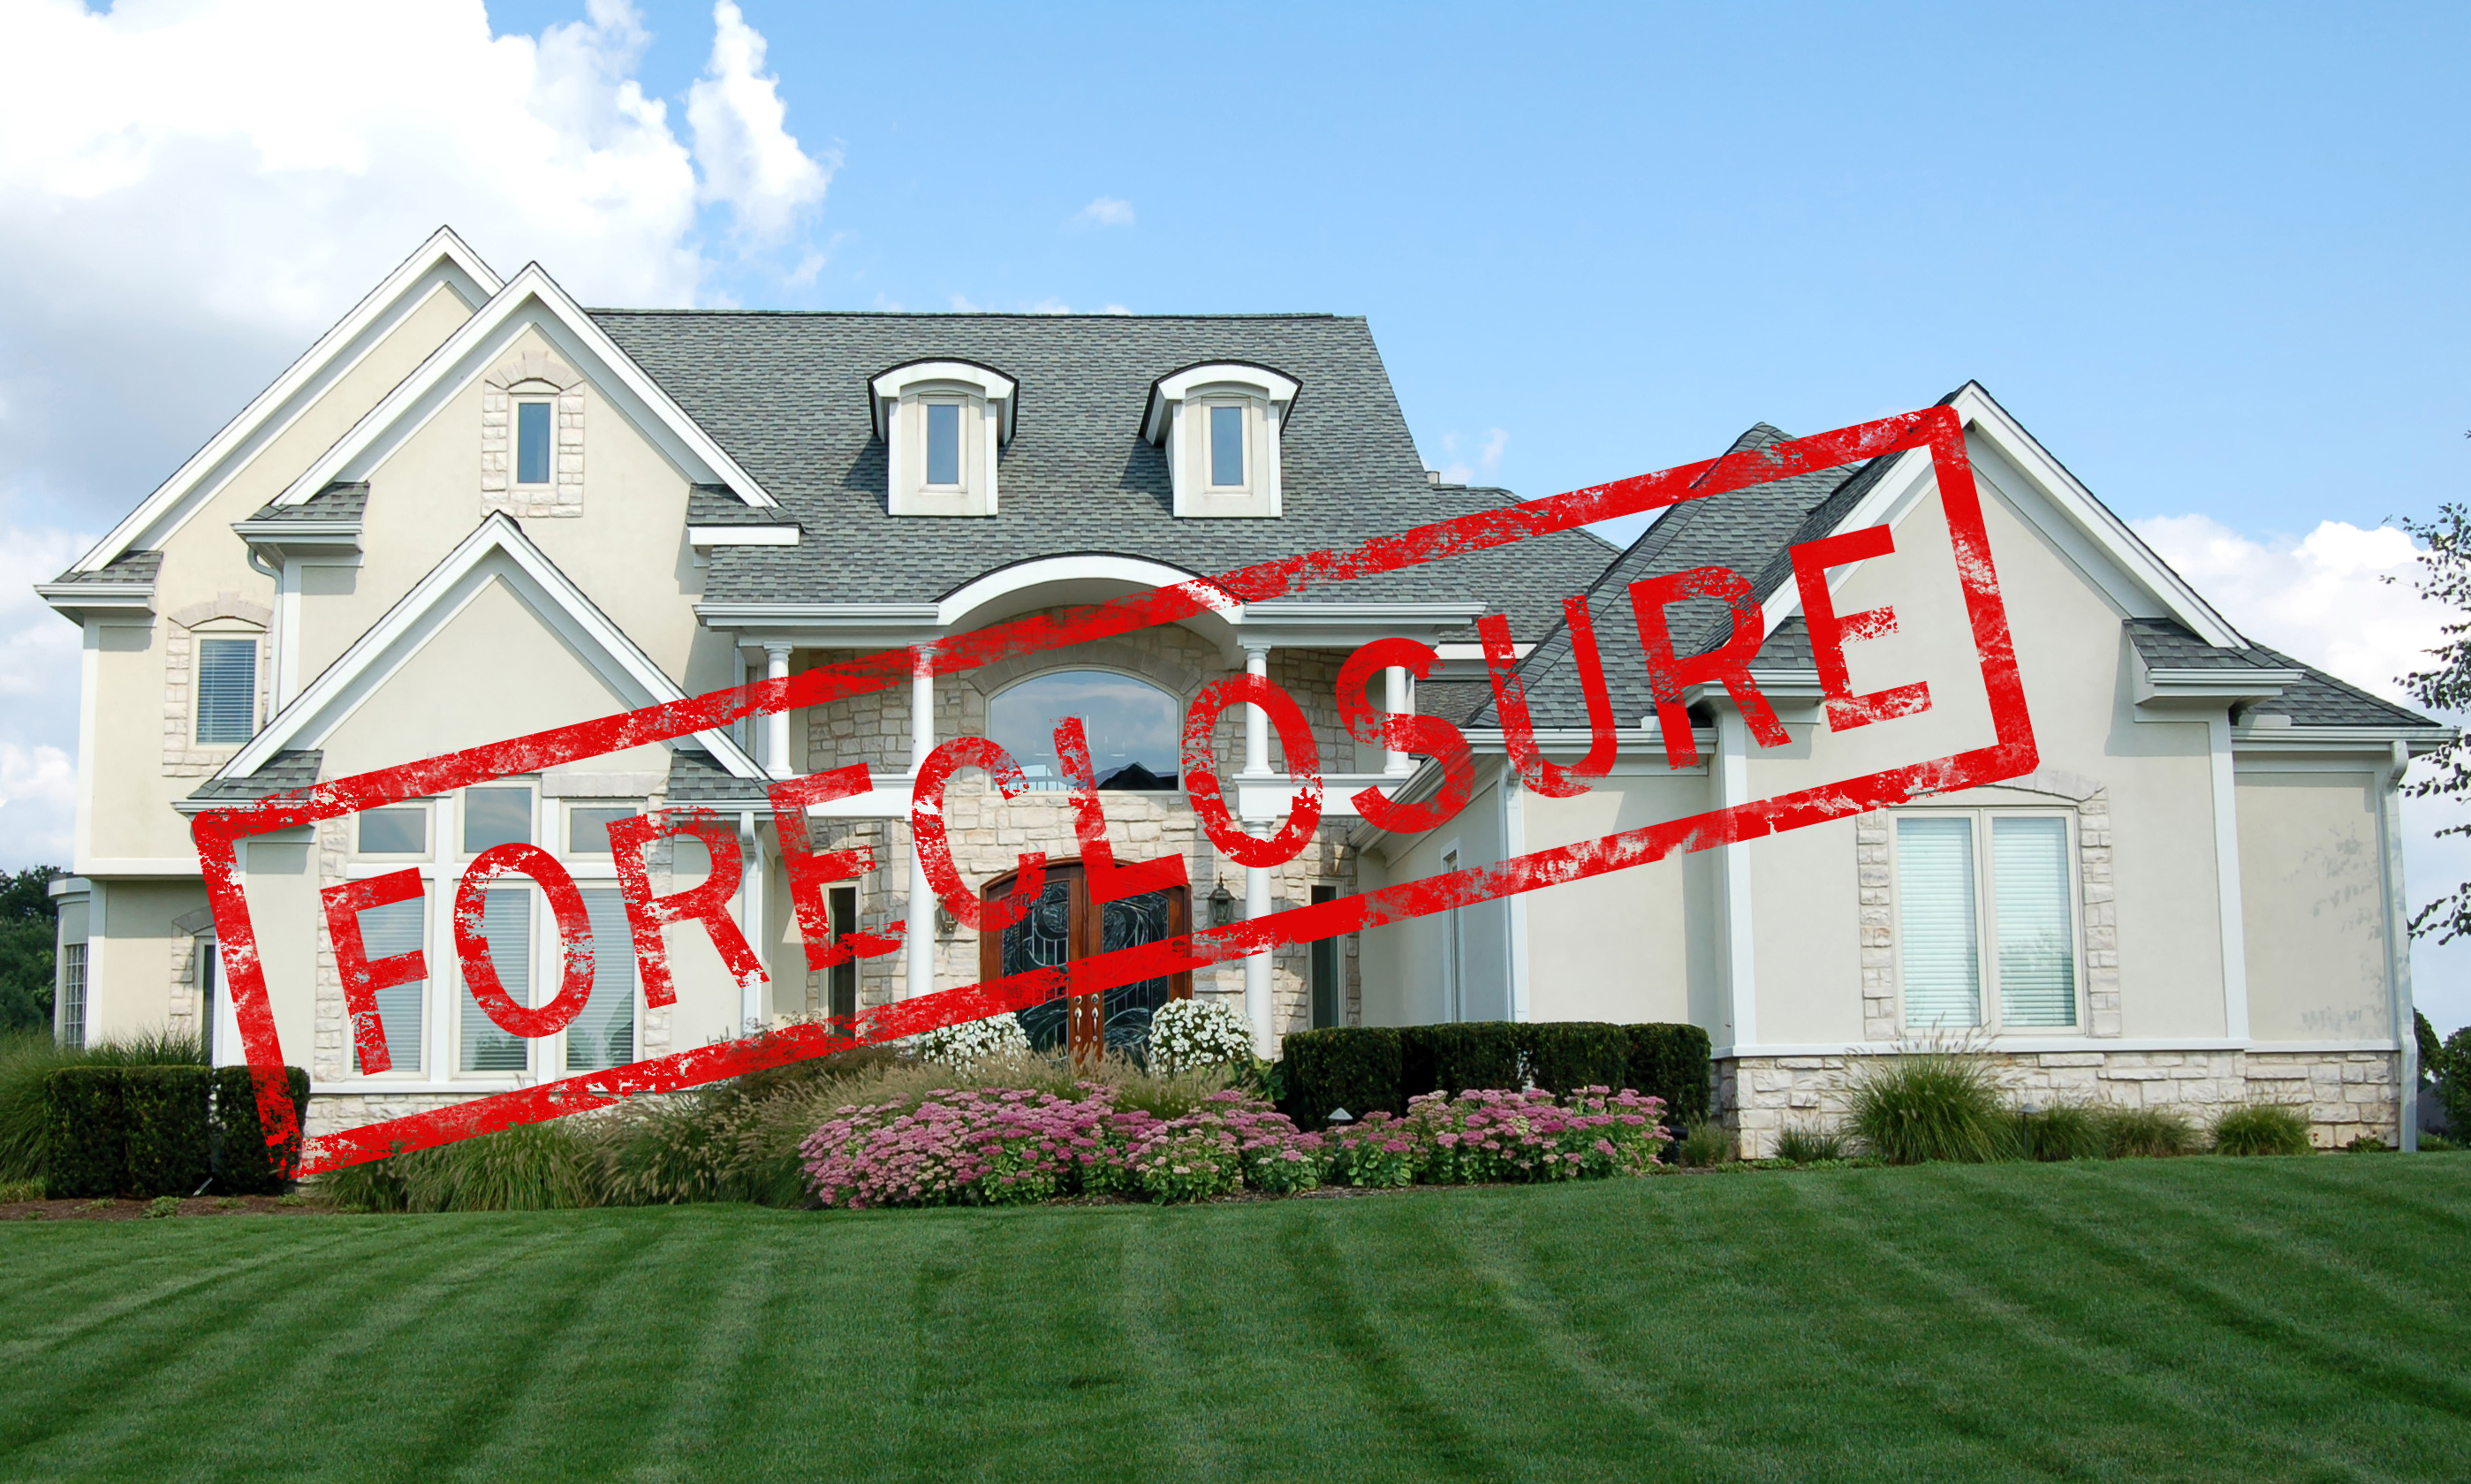 Call Bayou State Appraisals, LLC to order valuations regarding Saint Tammany foreclosures